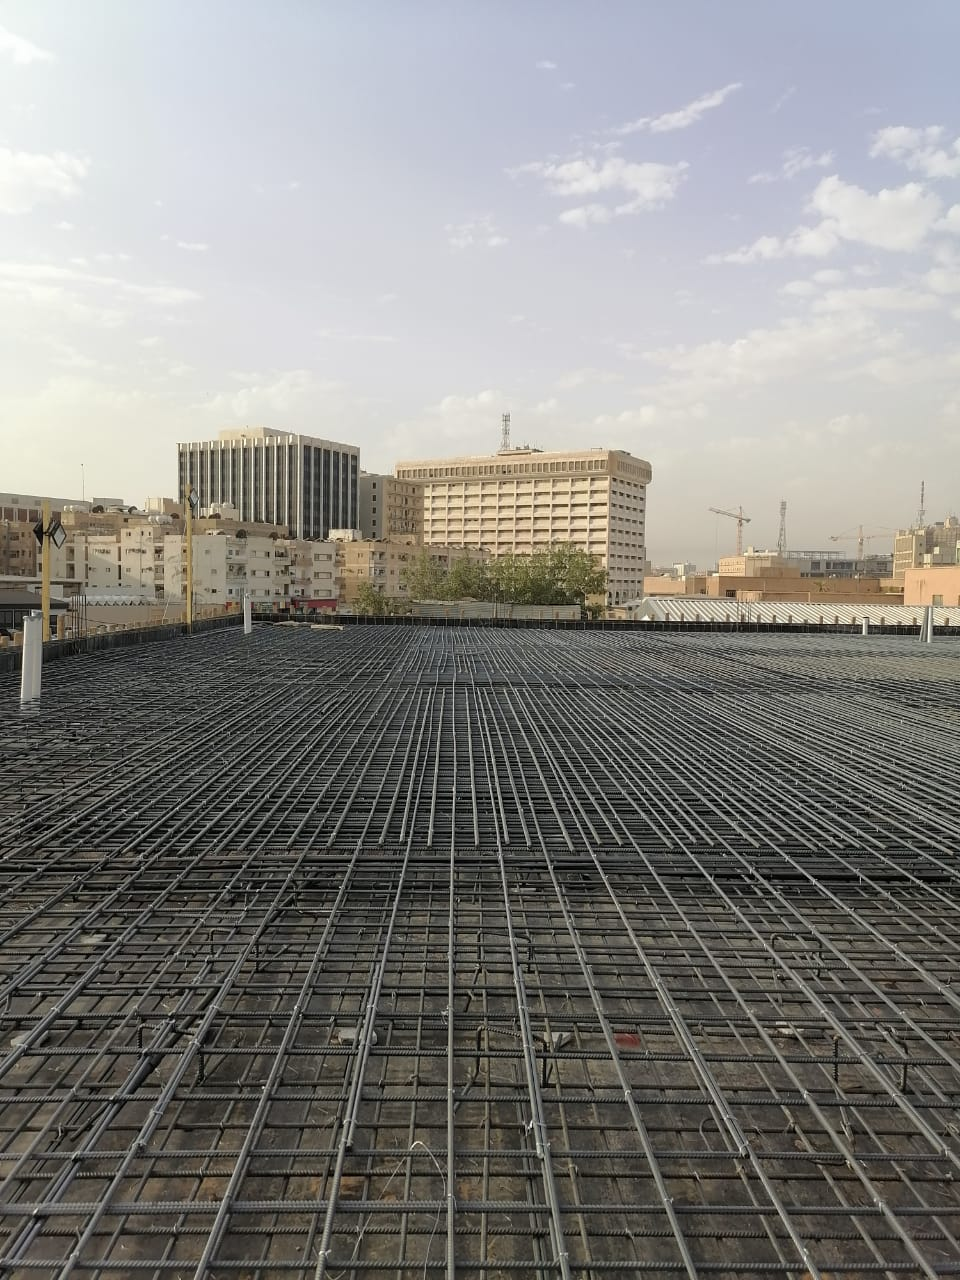 Establishment of the archive building of the Public Administration of Civil Affairs in Riyadh